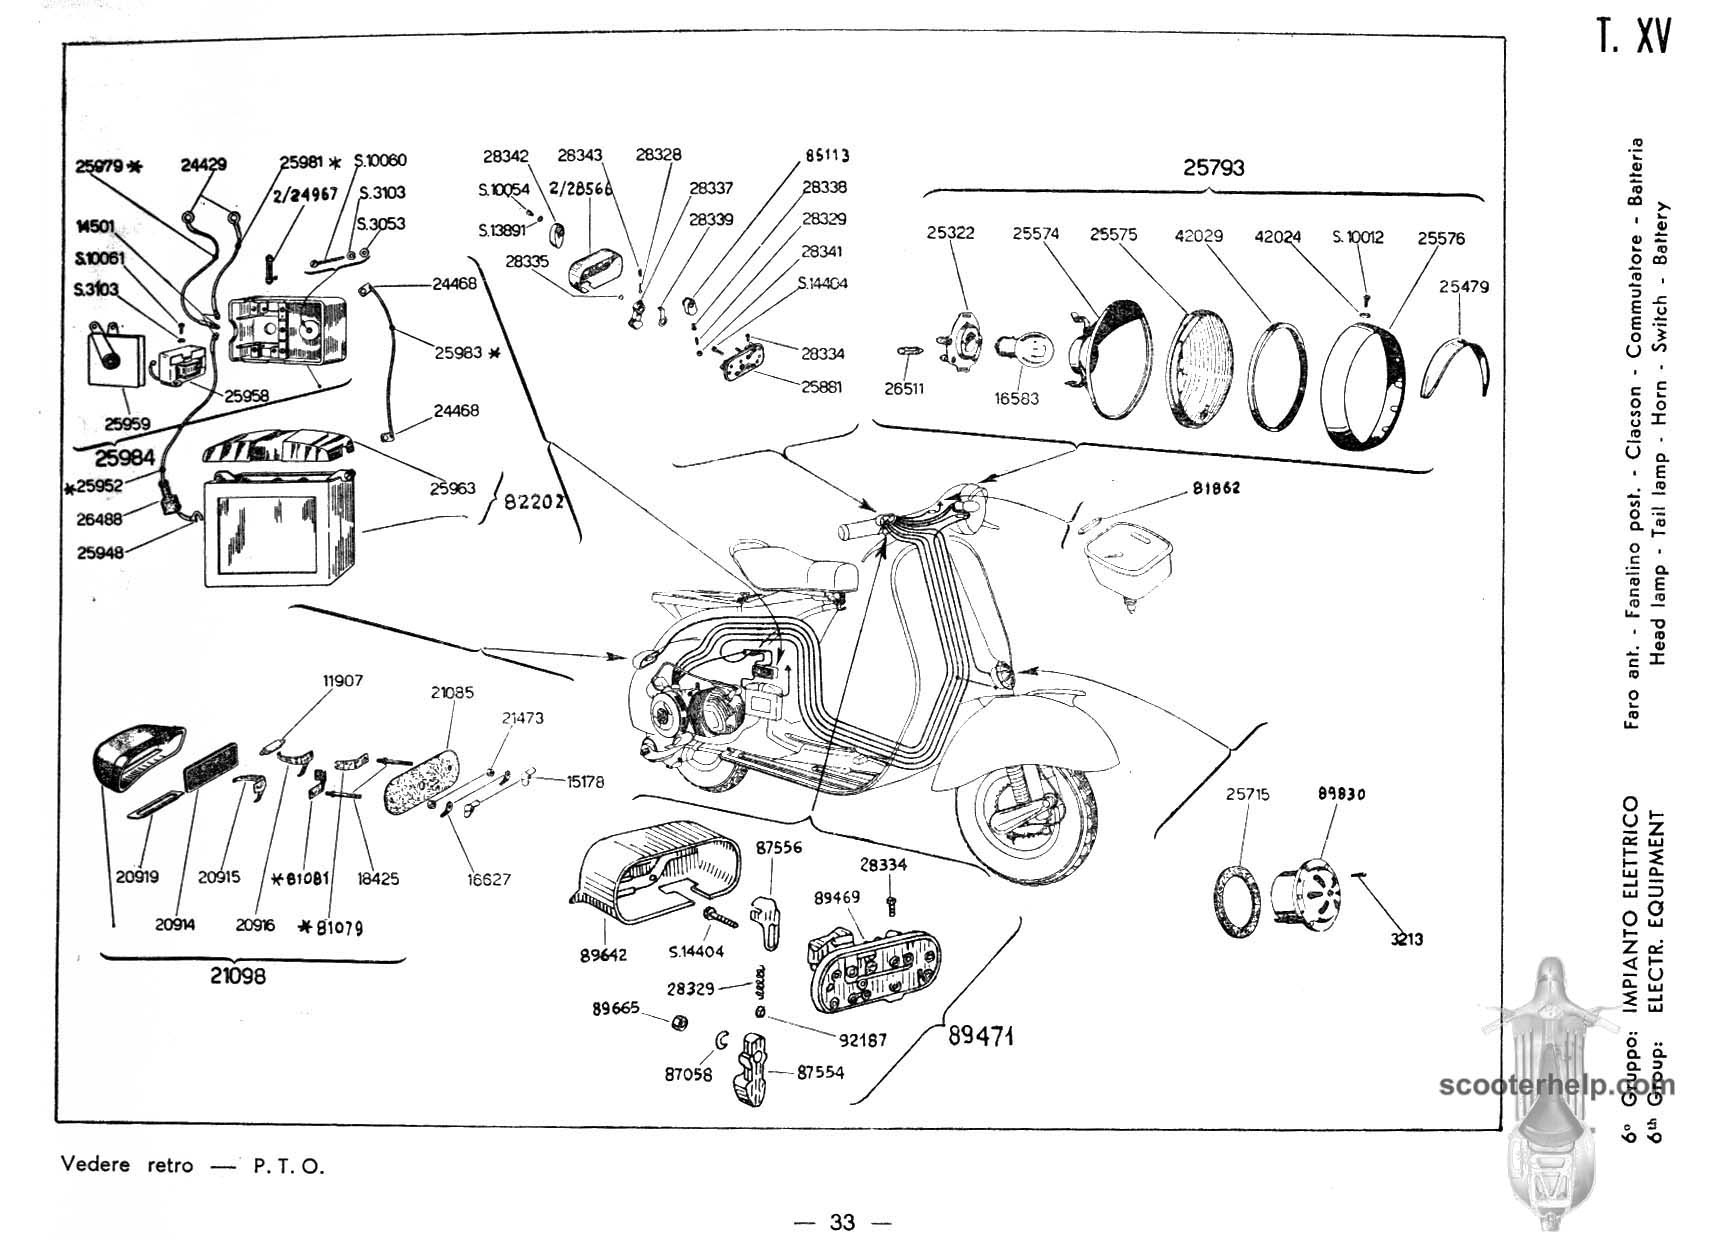 Vespa 150 (VB1T) Parts Manual